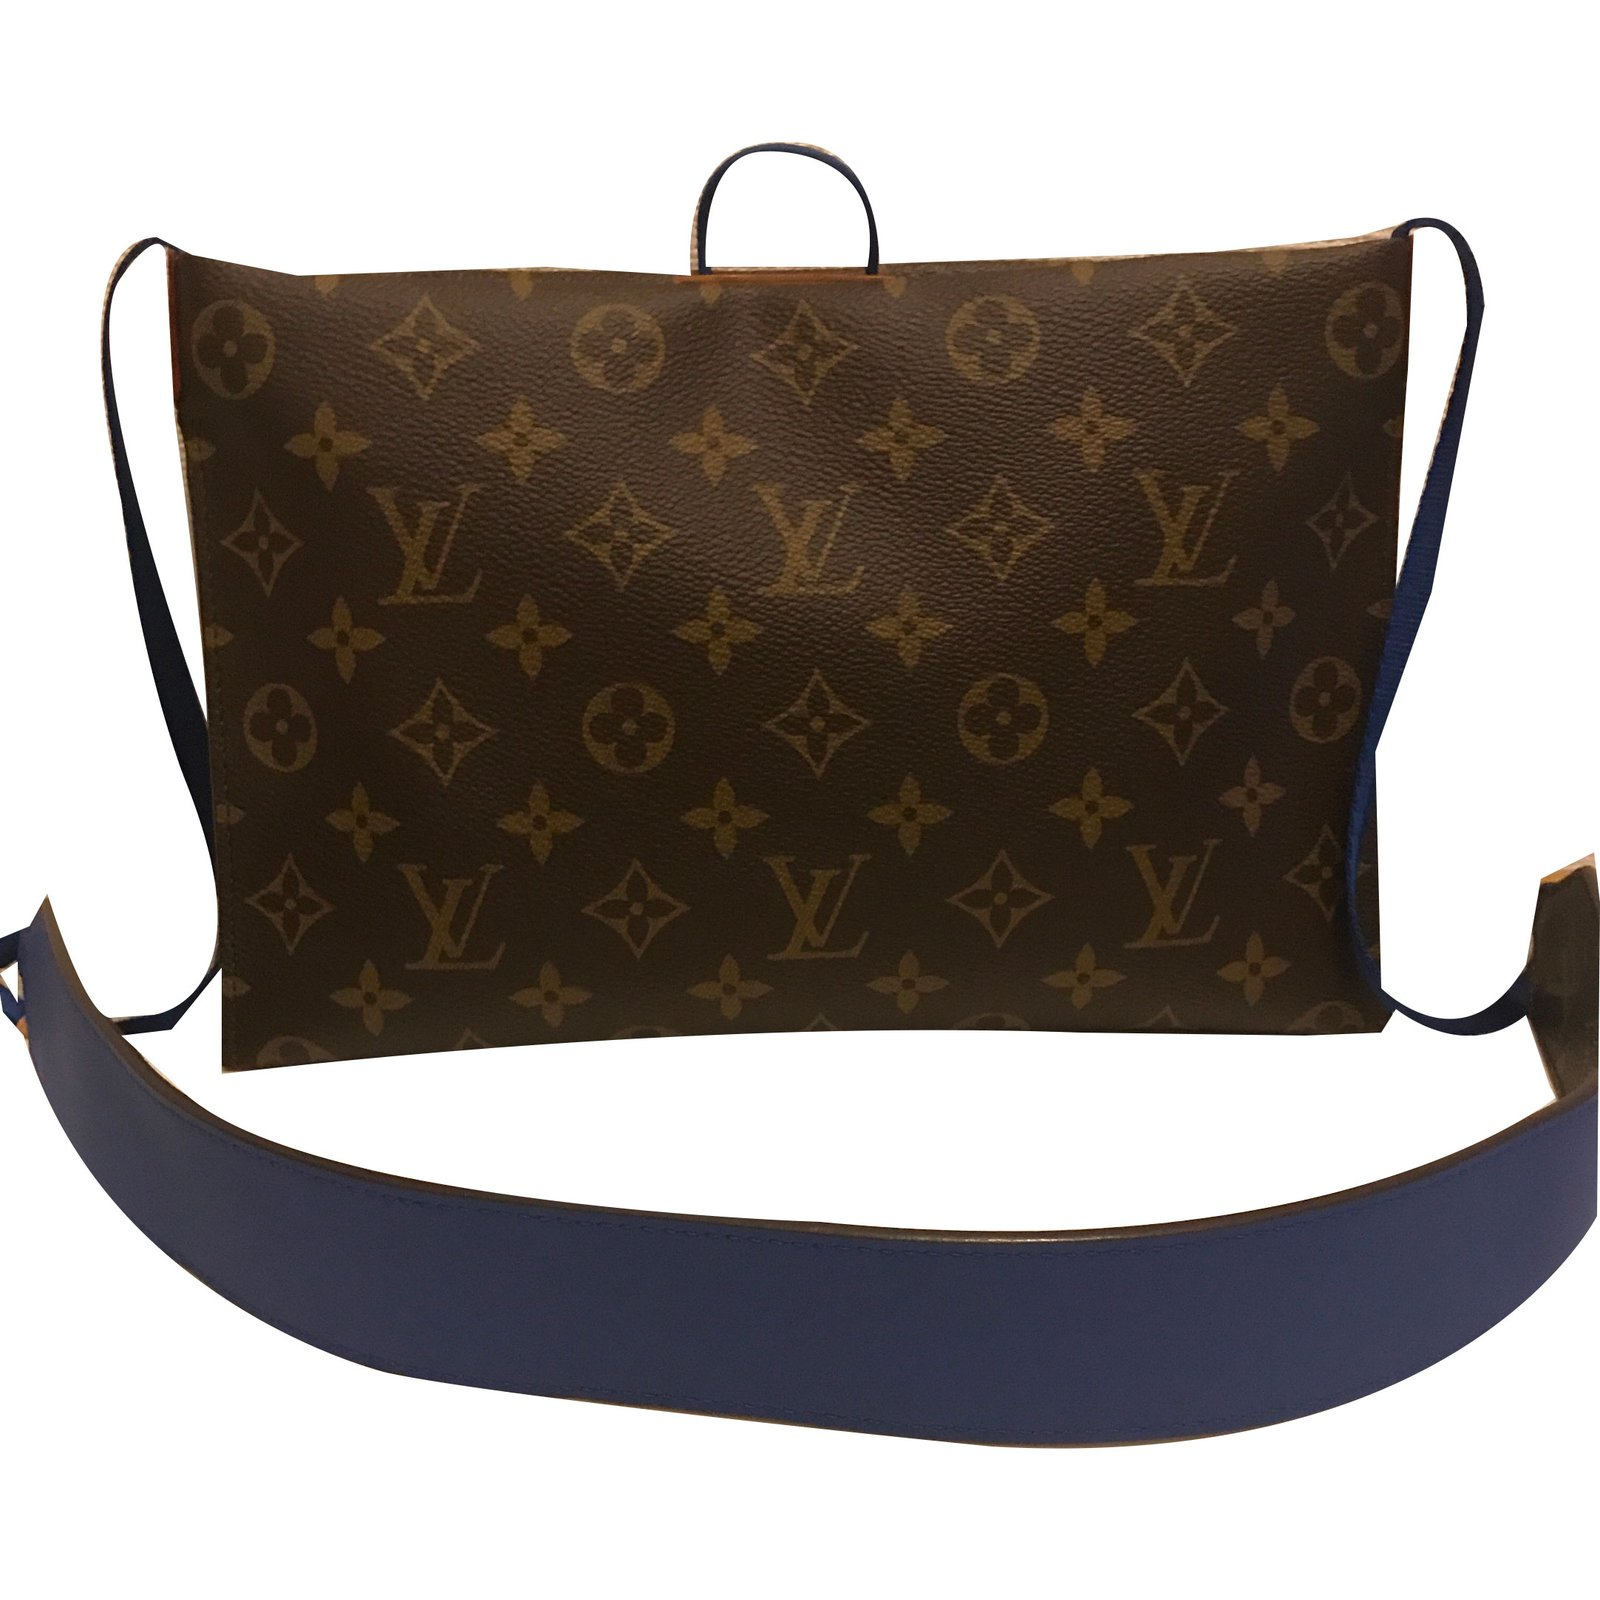 af34f89a541f Louis Vuitton Bags Briefcases Bags Briefcases Leather Multiple colors  ref.55322